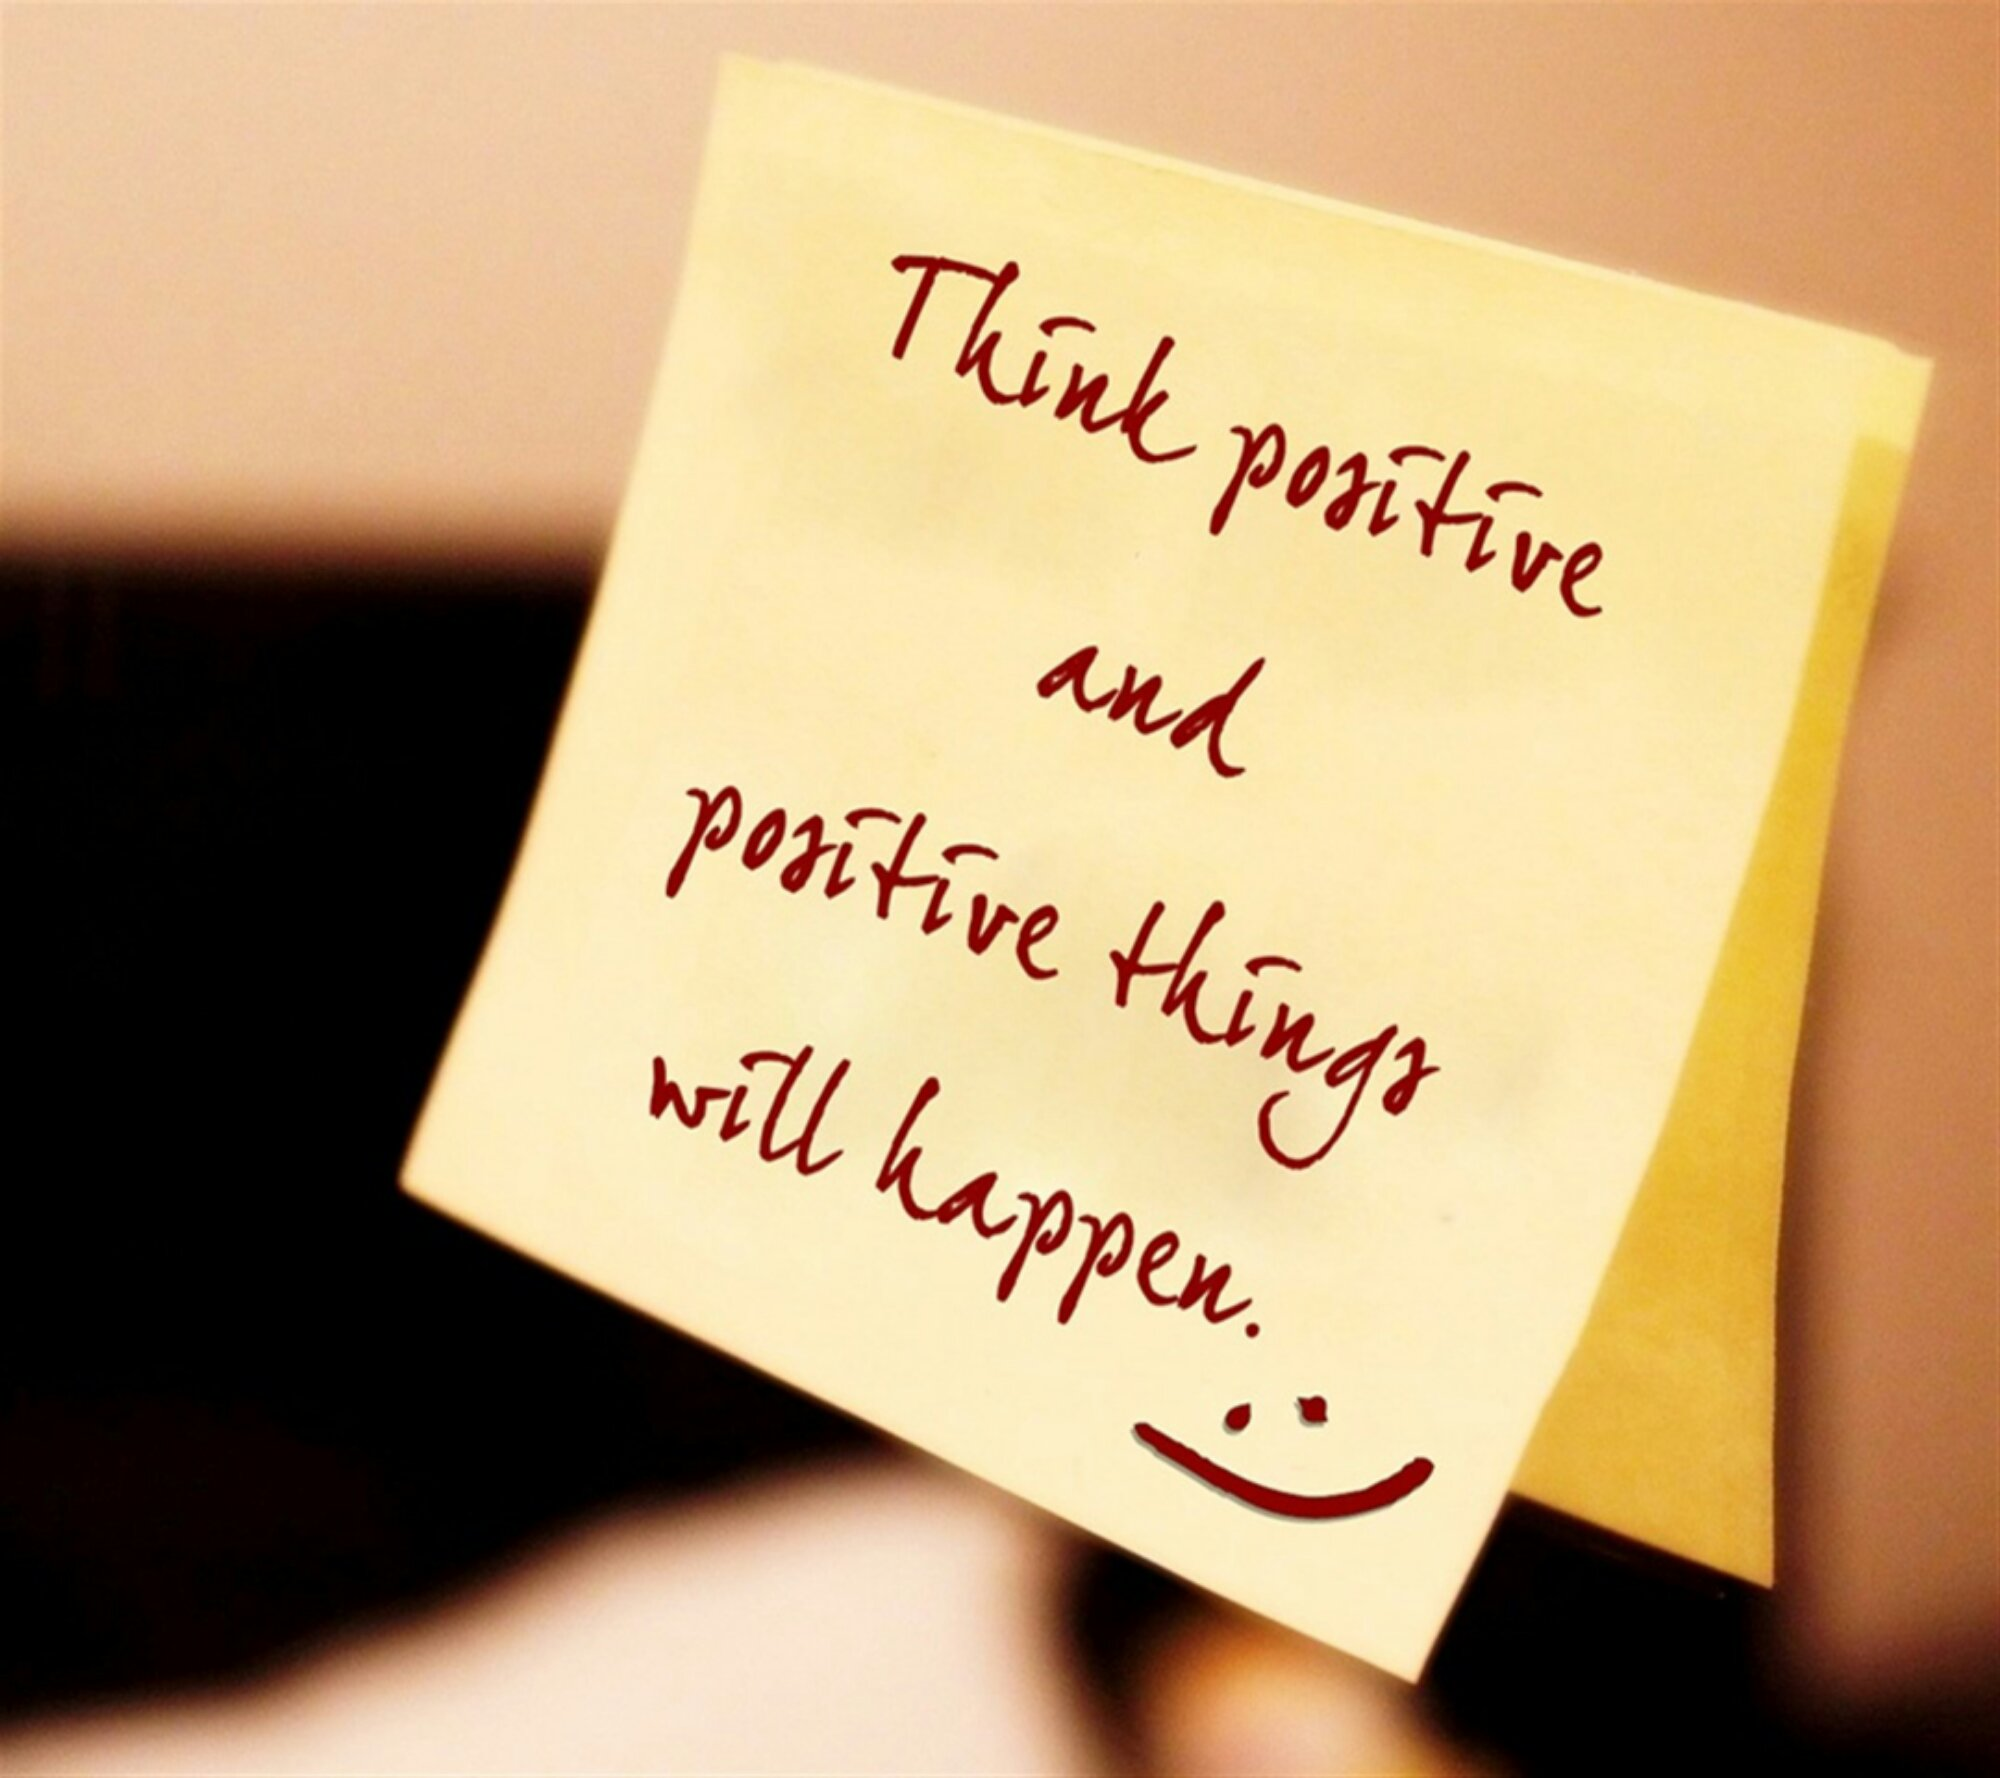 Positive Thinking Wallpaper